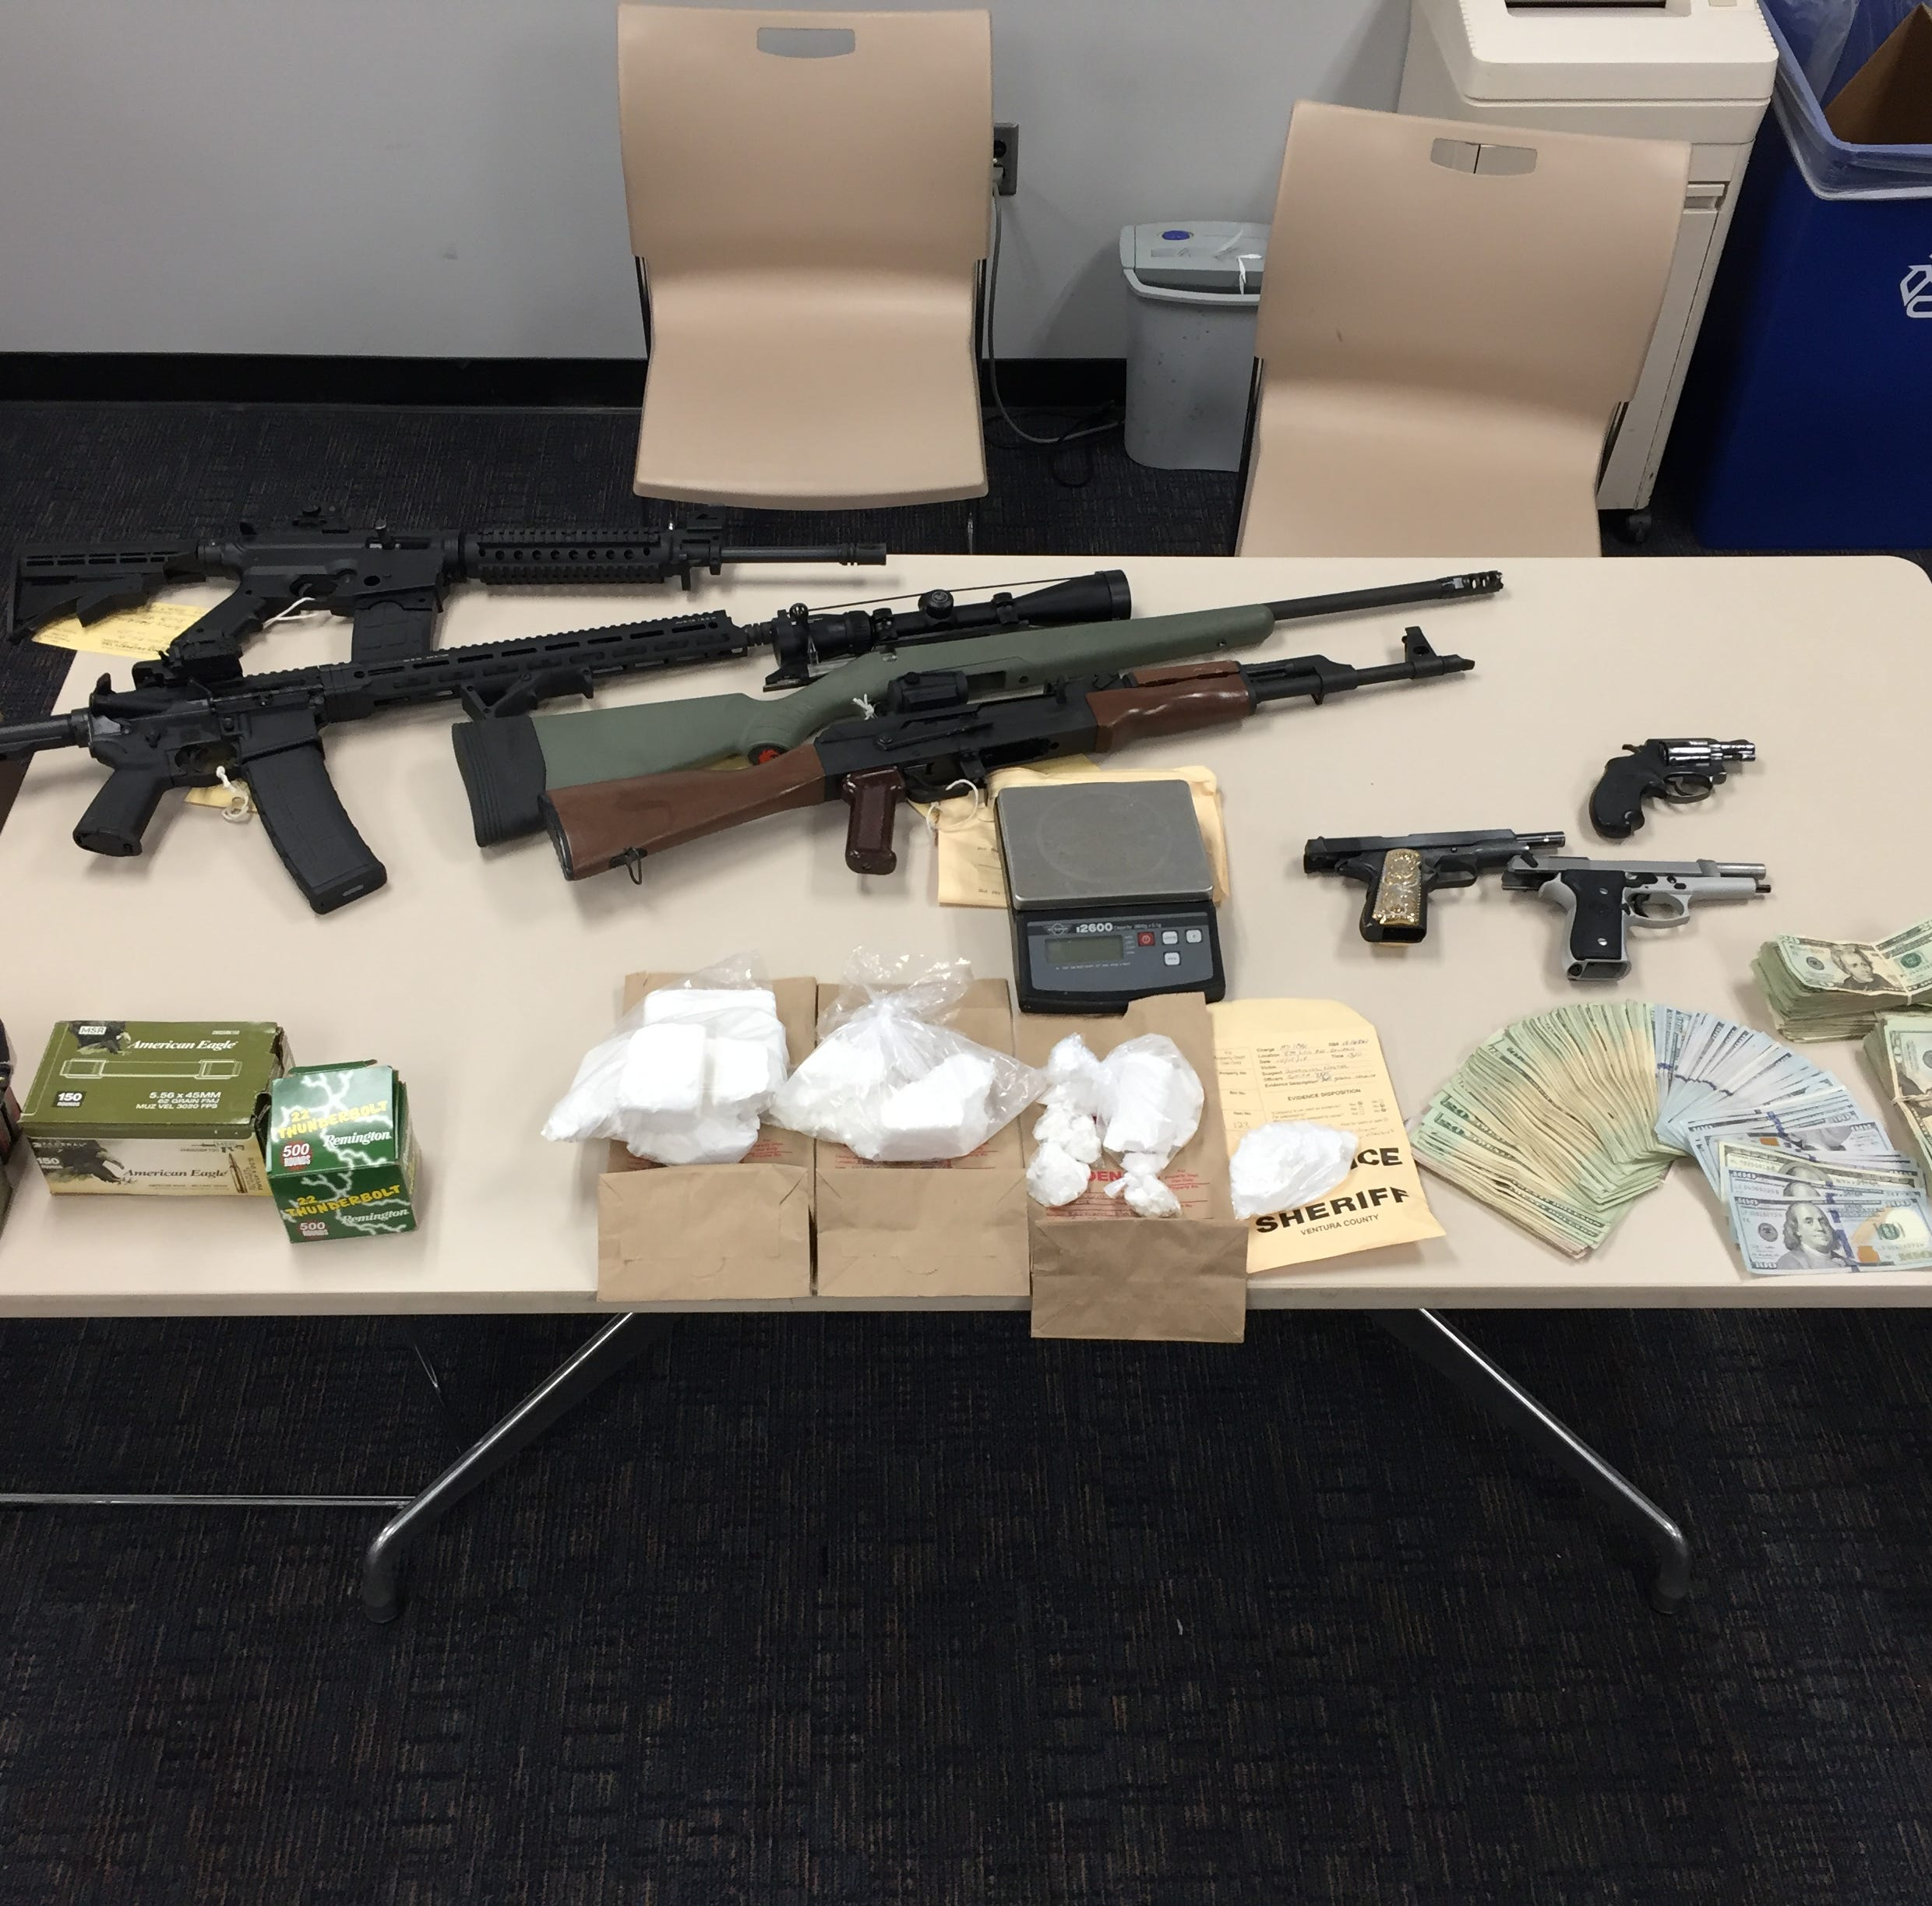 Sheriff's office: Assault rifle, cocaine, cash seized in El Rio search; 2 arrested